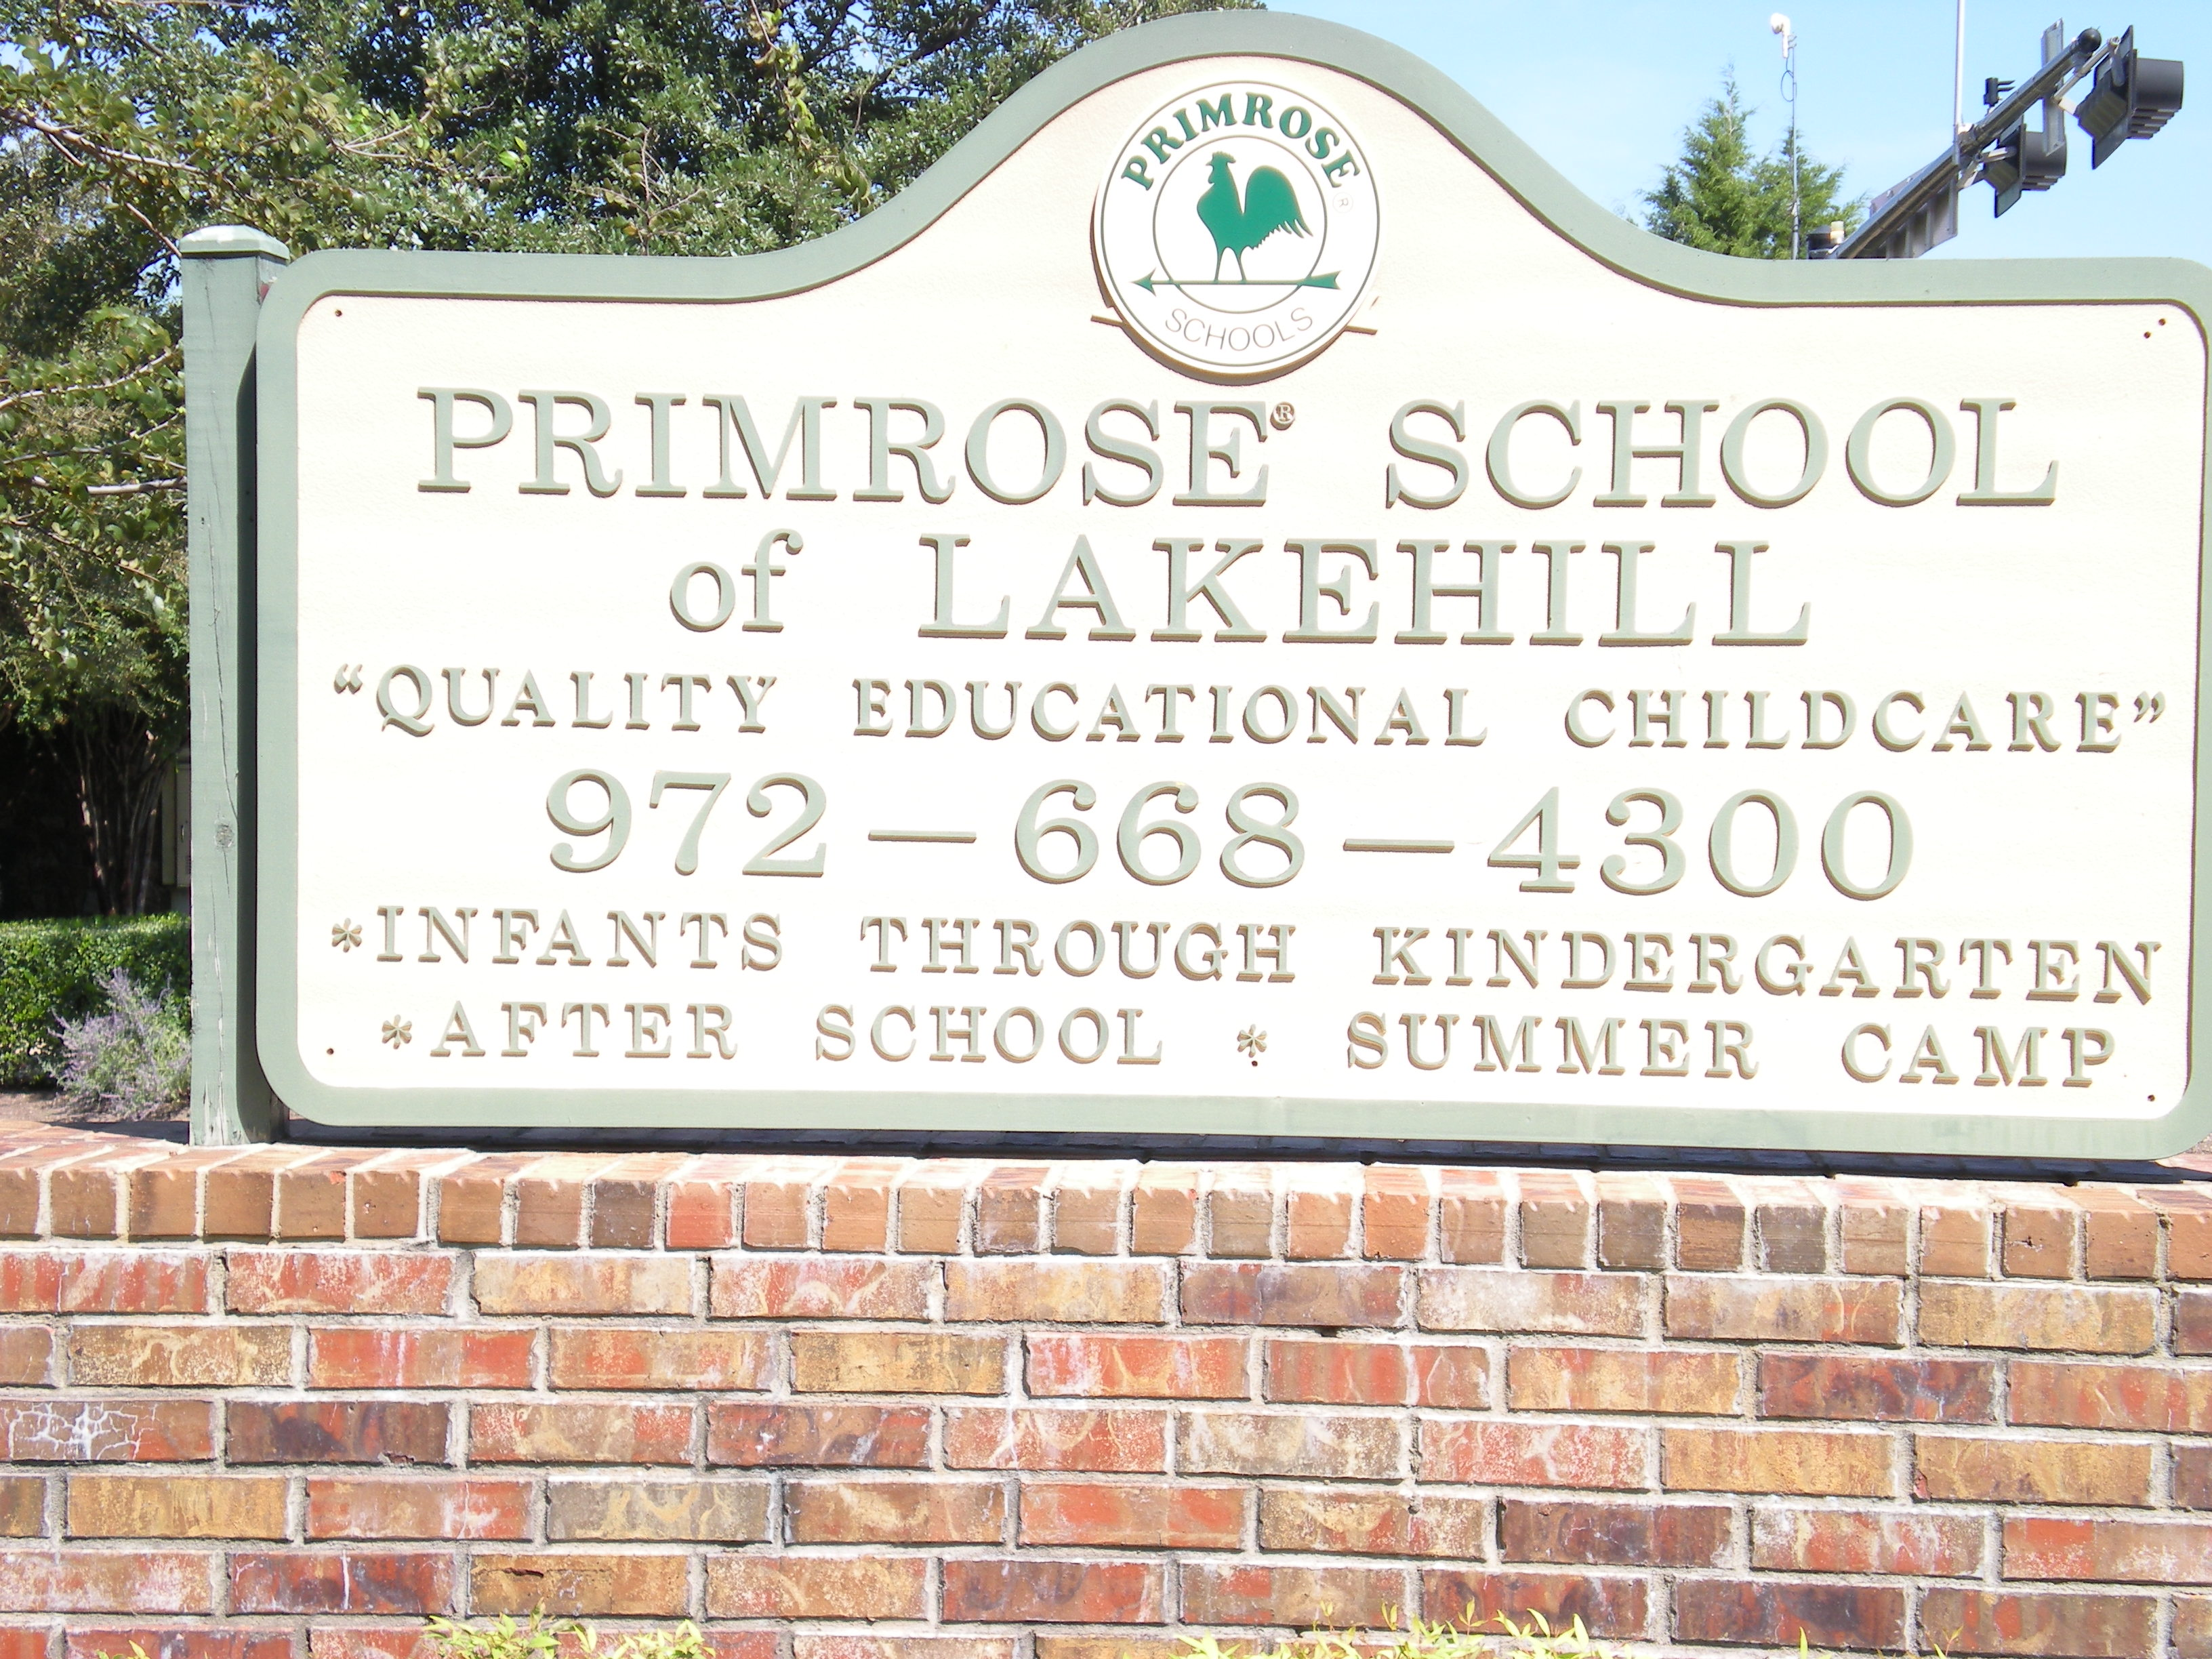 Primrose School of Lakehill